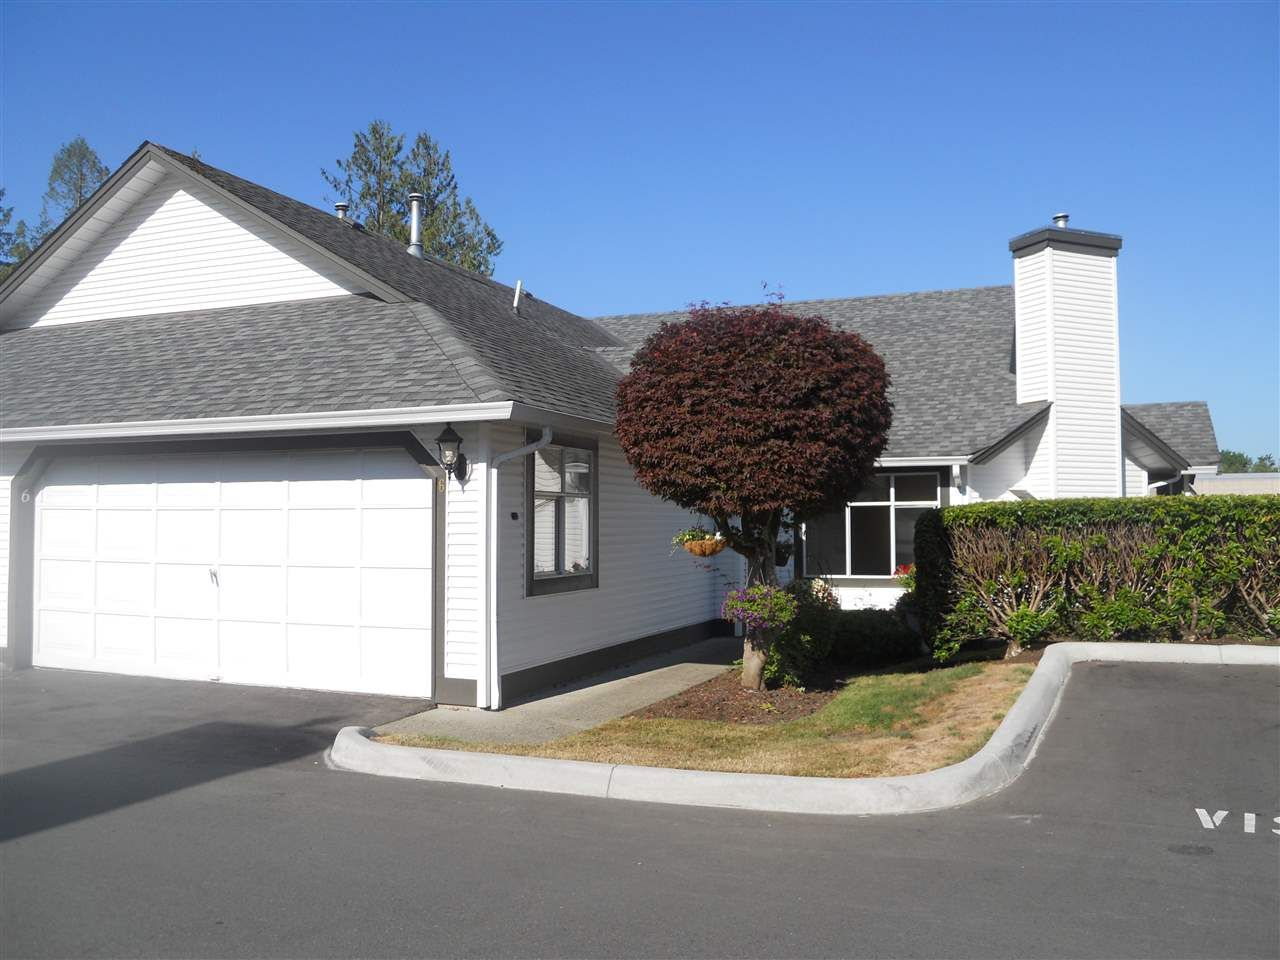 """Main Photo: 6 19649 53 Avenue in Langley: Langley City Townhouse for sale in """"Huntsfield Green"""" : MLS®# R2192002"""